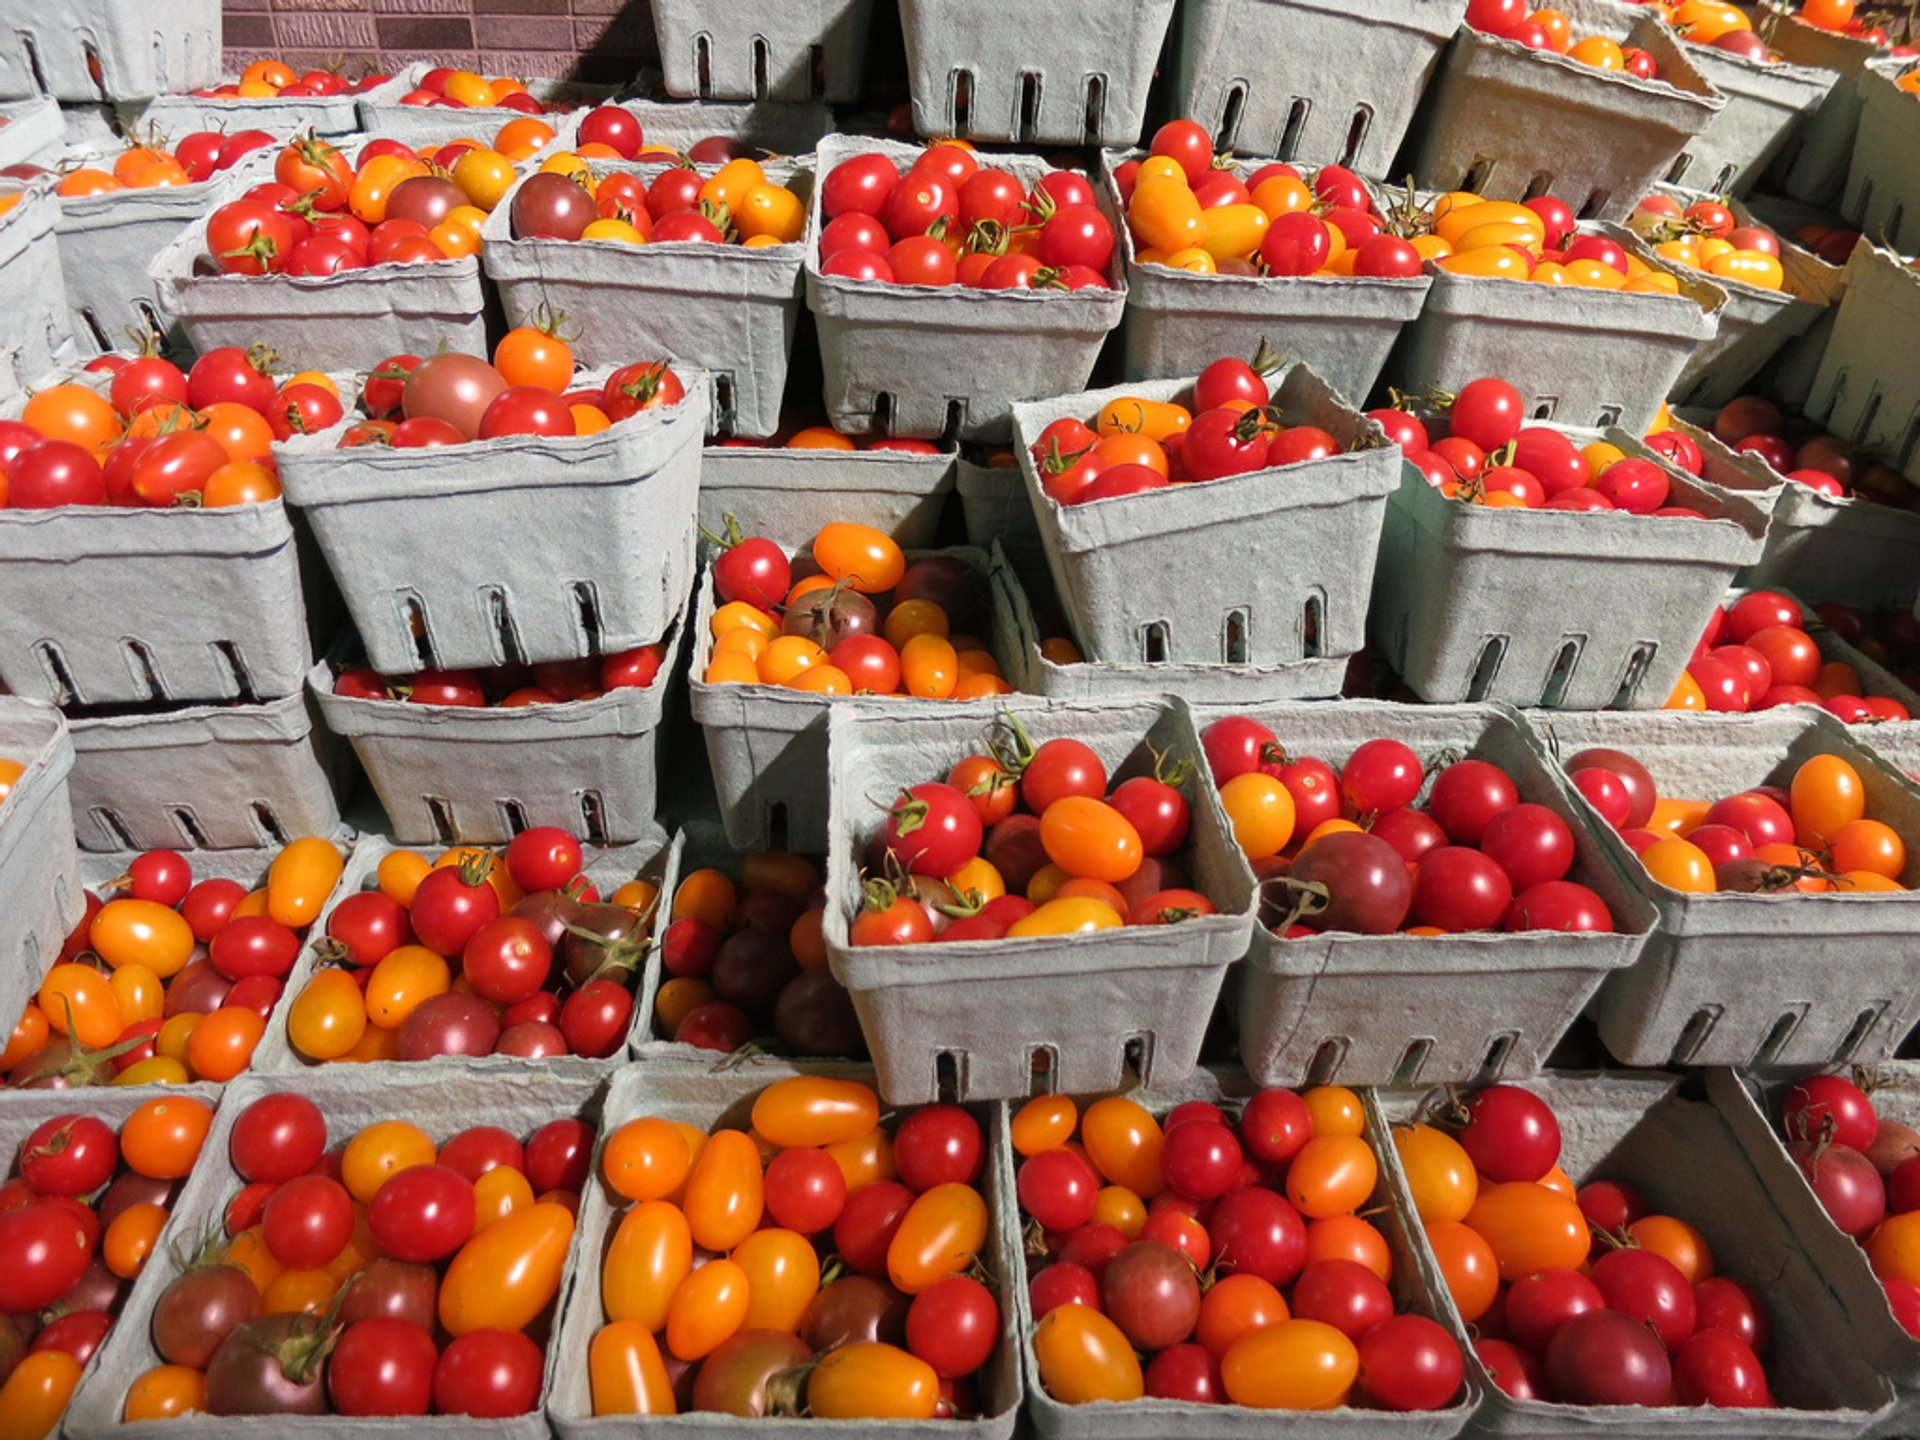 Heirloom cherry tomatoes at Wholefoods 2020